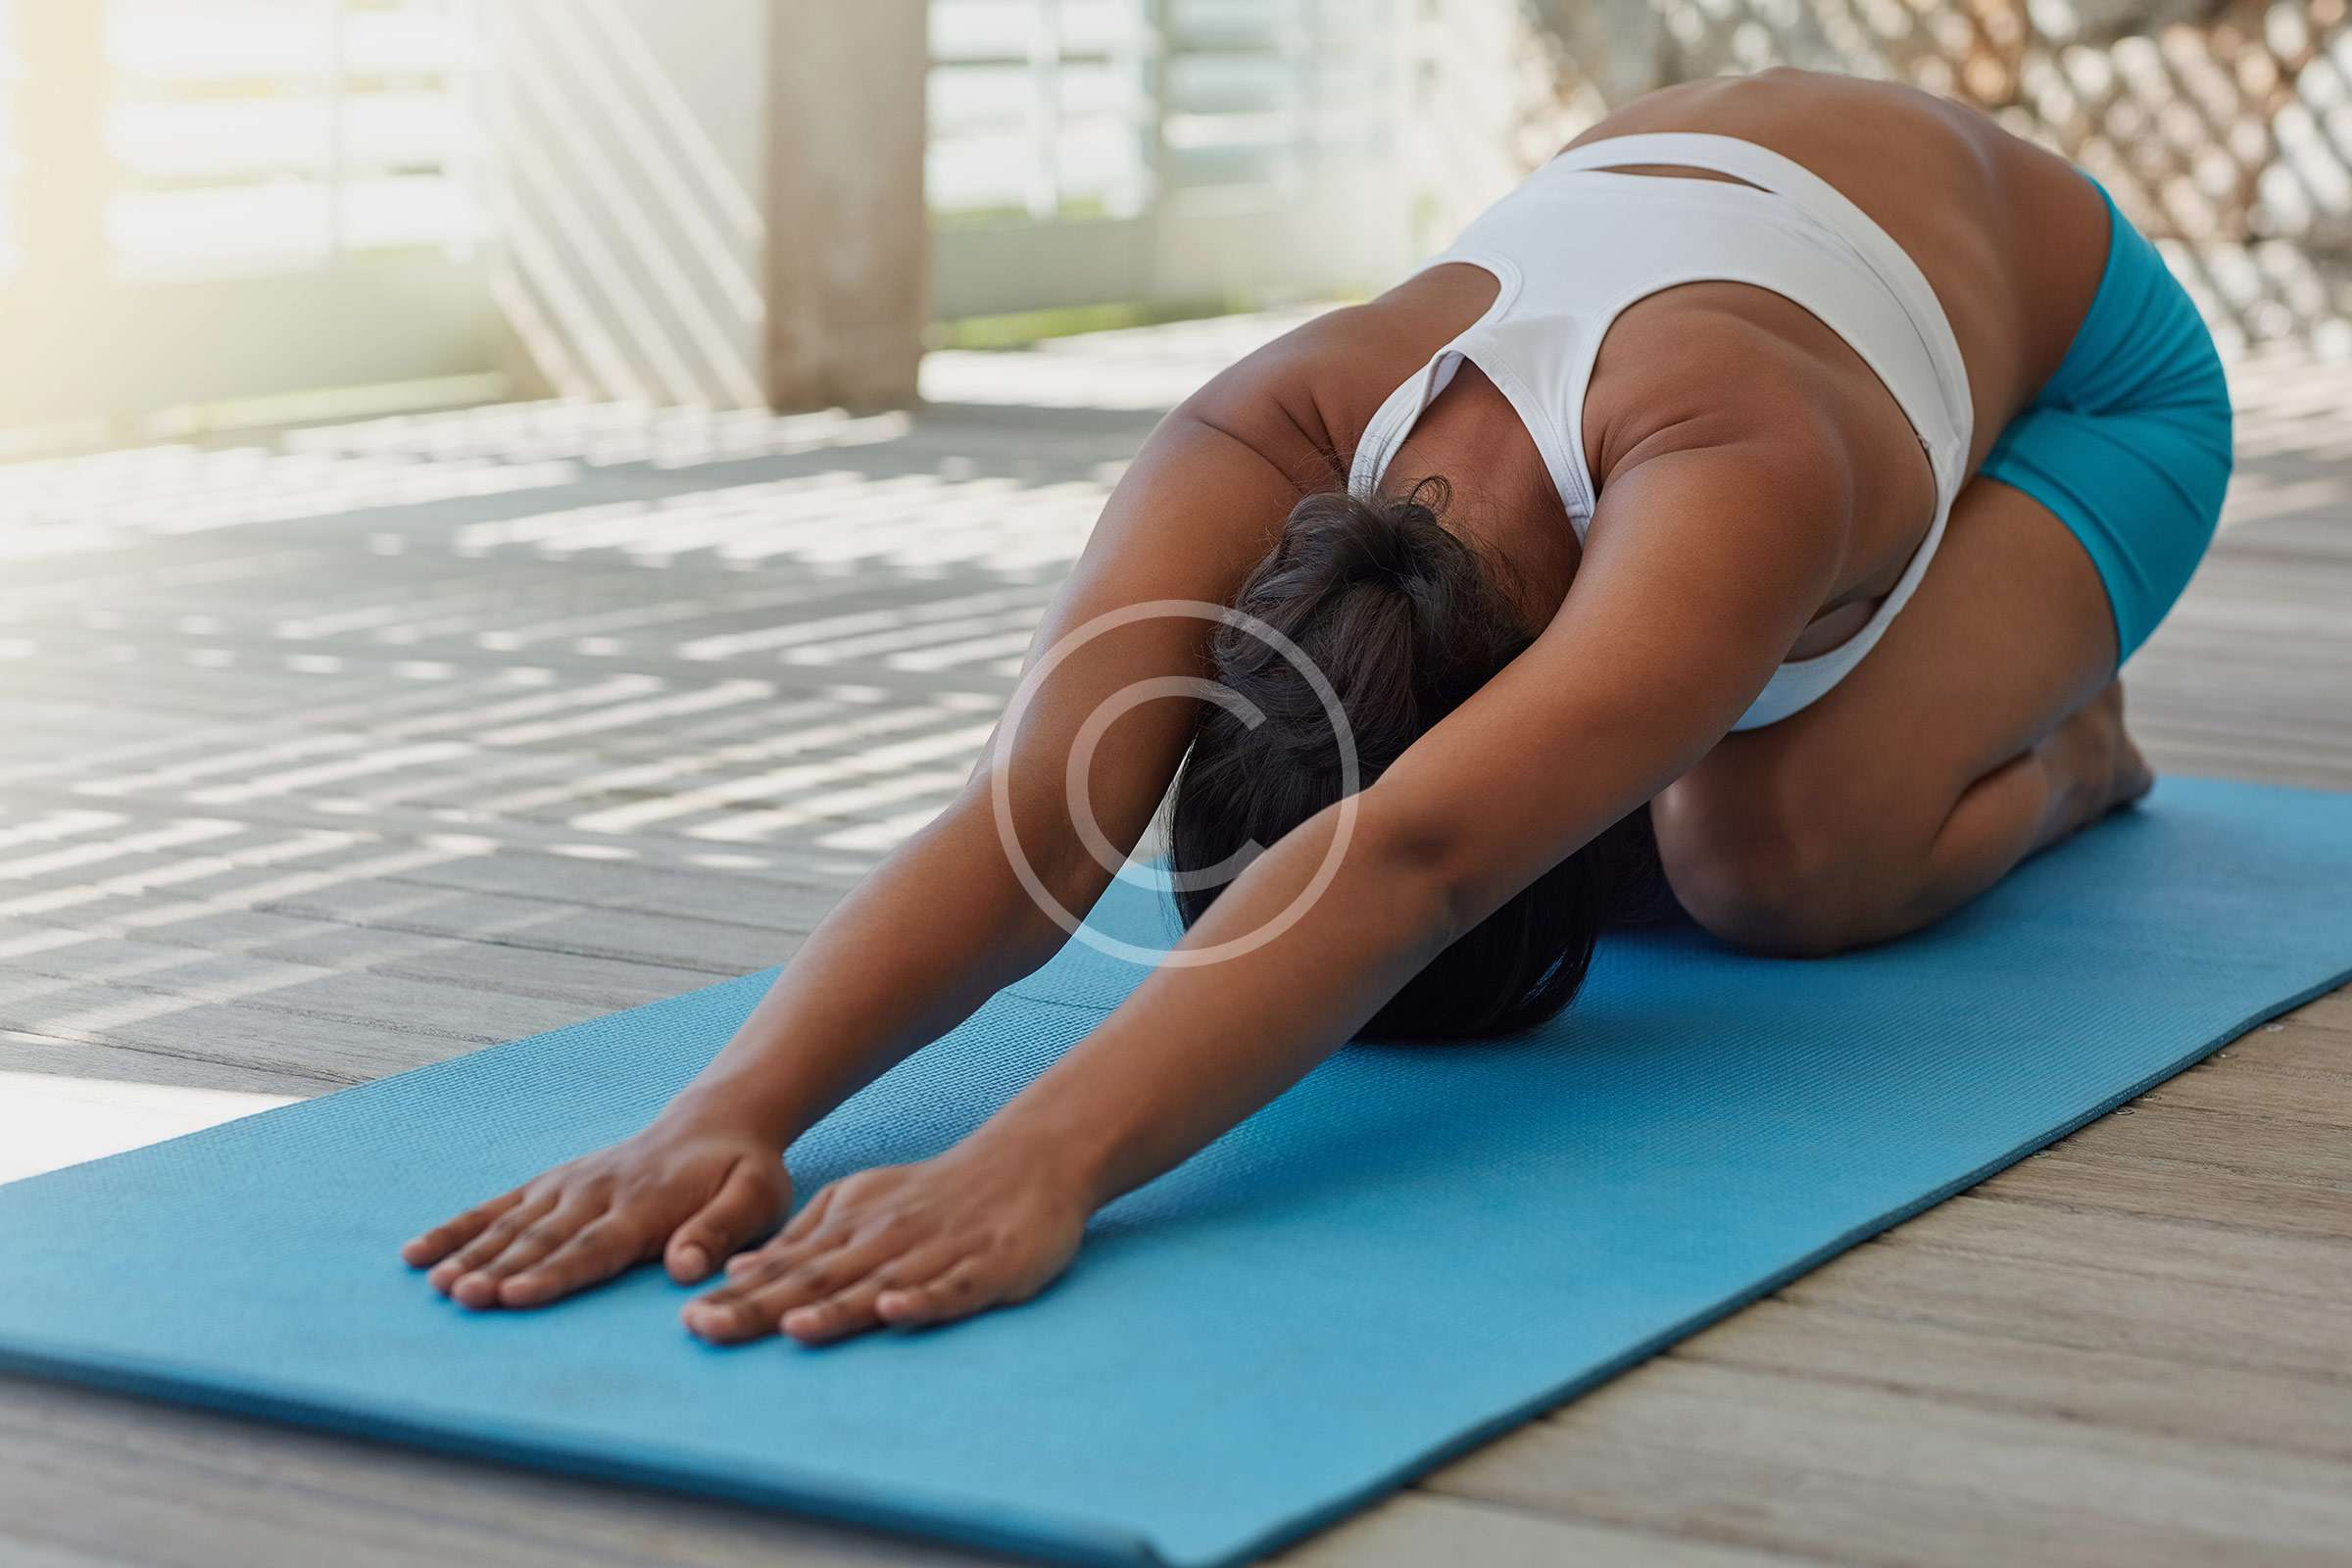 Extended Stretching Body Practice for Pain Relief